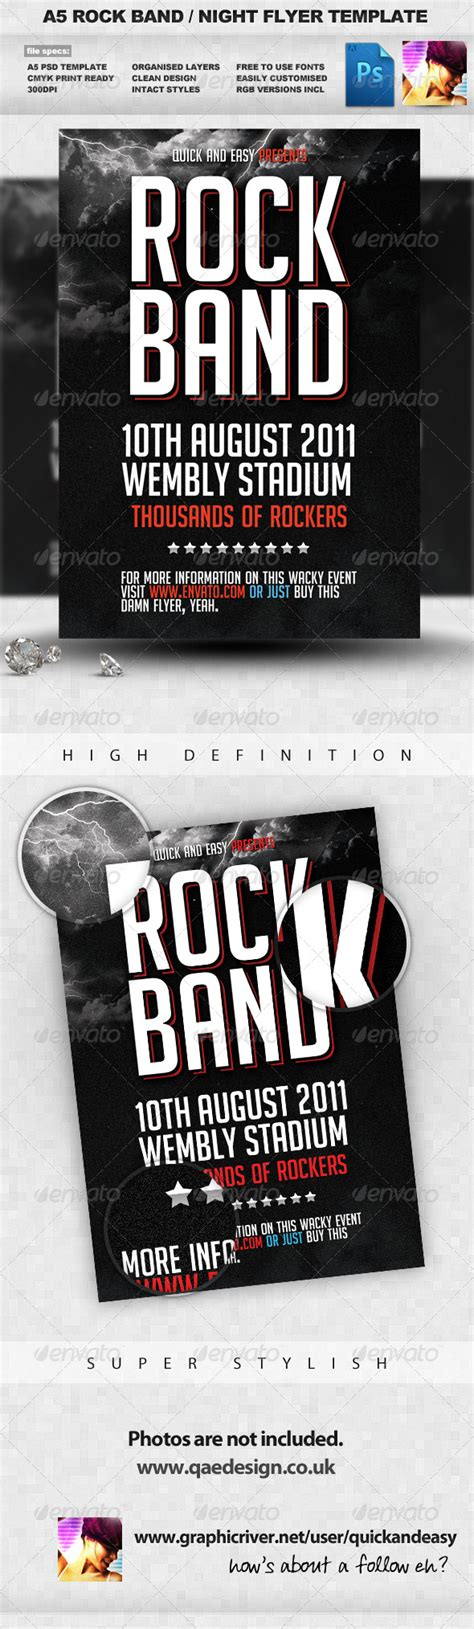 band flyer template creating a rock band flyer in illustrator 187 tinkytyler org stock photos graphics